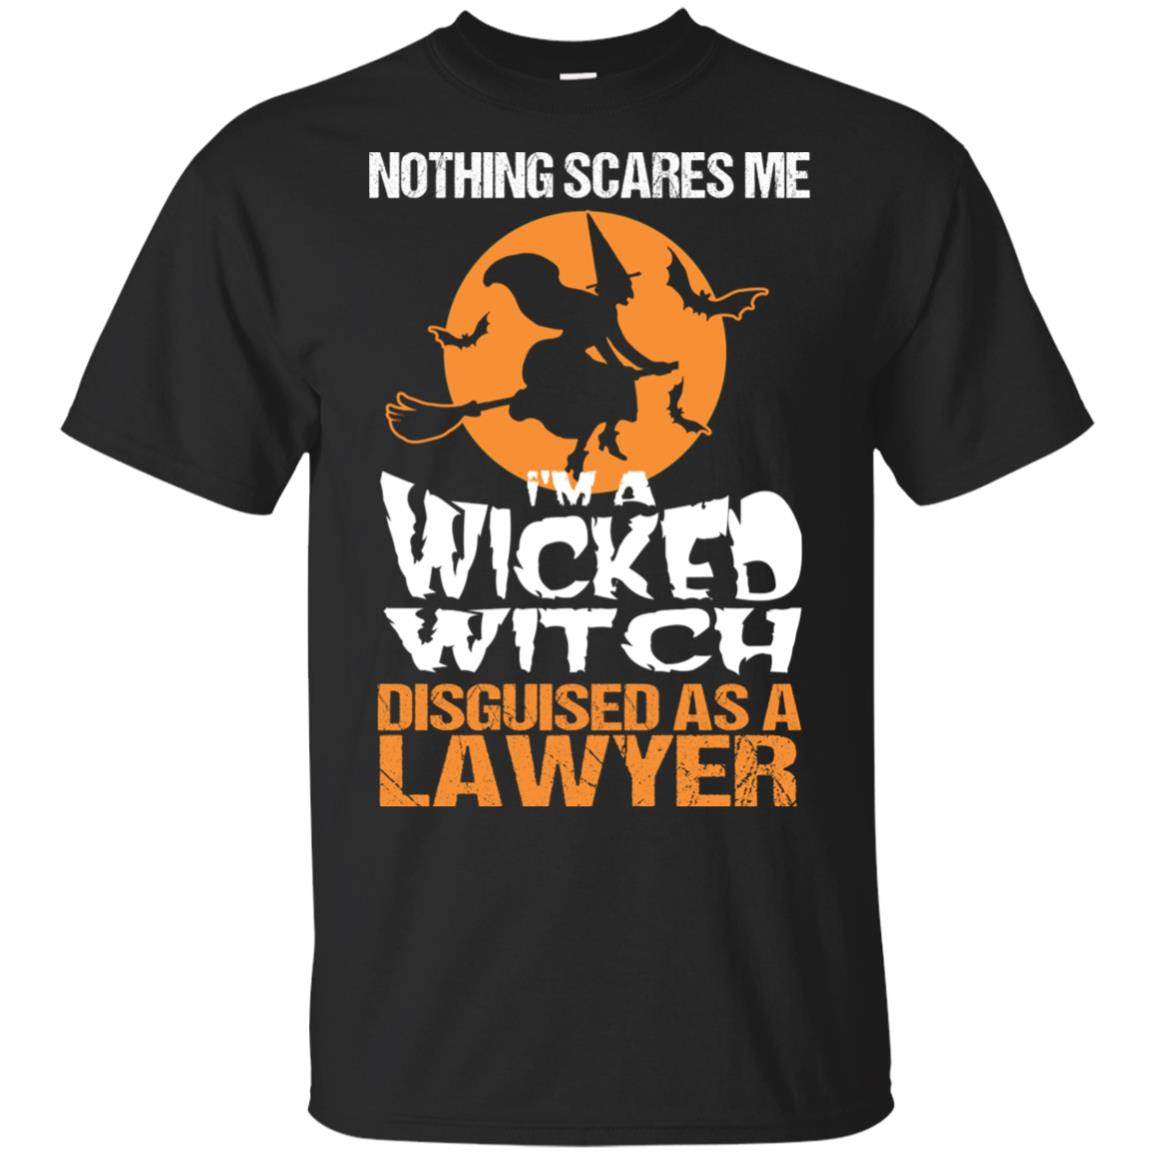 Nothing Scares Me I'm a Lawyer Gift Outfit Unisex Short Sleeve